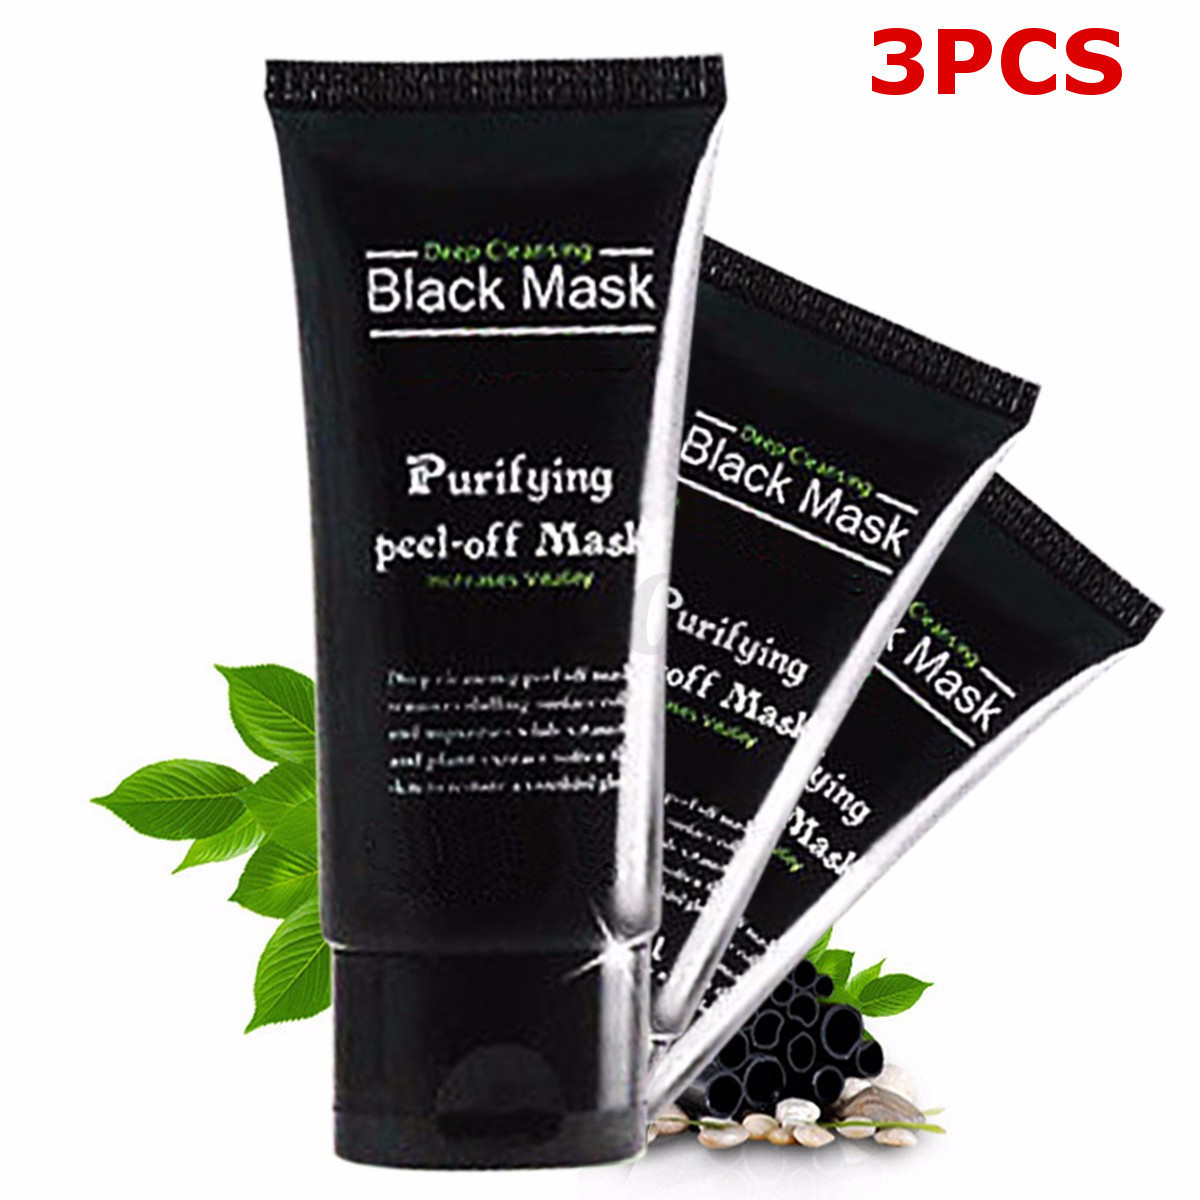 masque charbon anti acn point noir boue black mask nettoyage nez visage brosse ebay. Black Bedroom Furniture Sets. Home Design Ideas